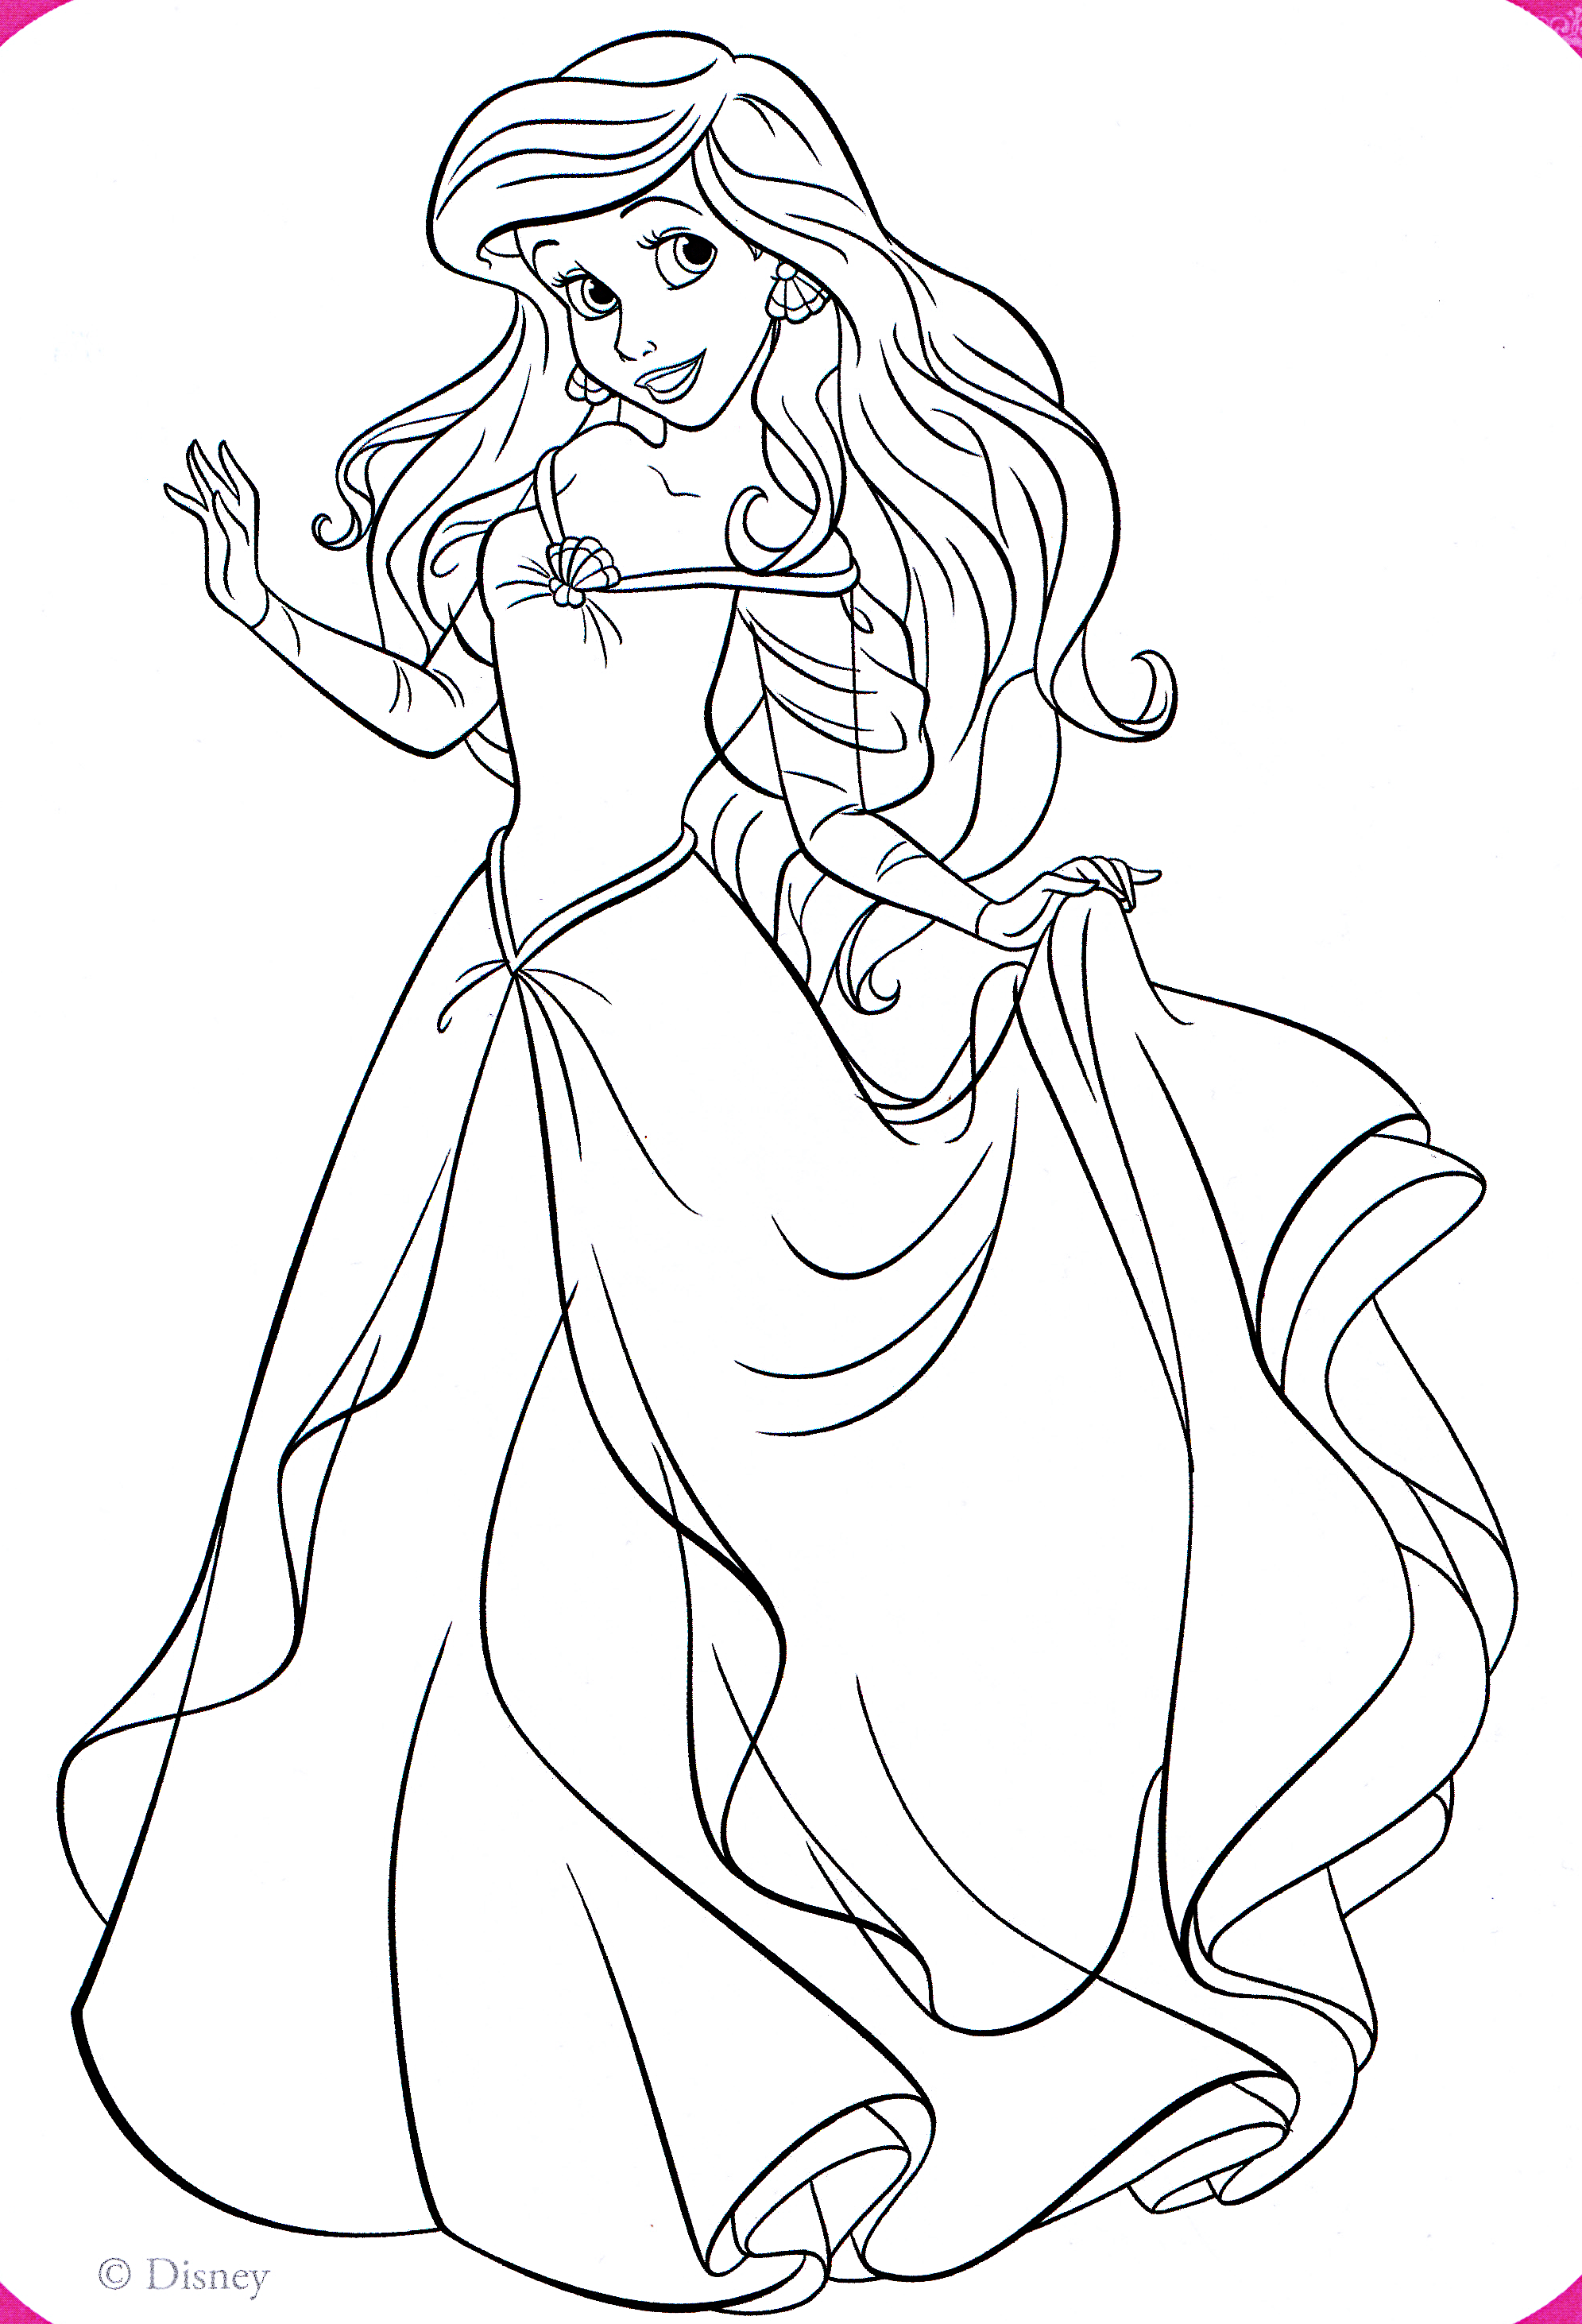 Walt Disney Coloring Pages Princess Ariel Walt Disney Disney Princess Coloring Pages Ariel In A Dress Free Coloring Sheets